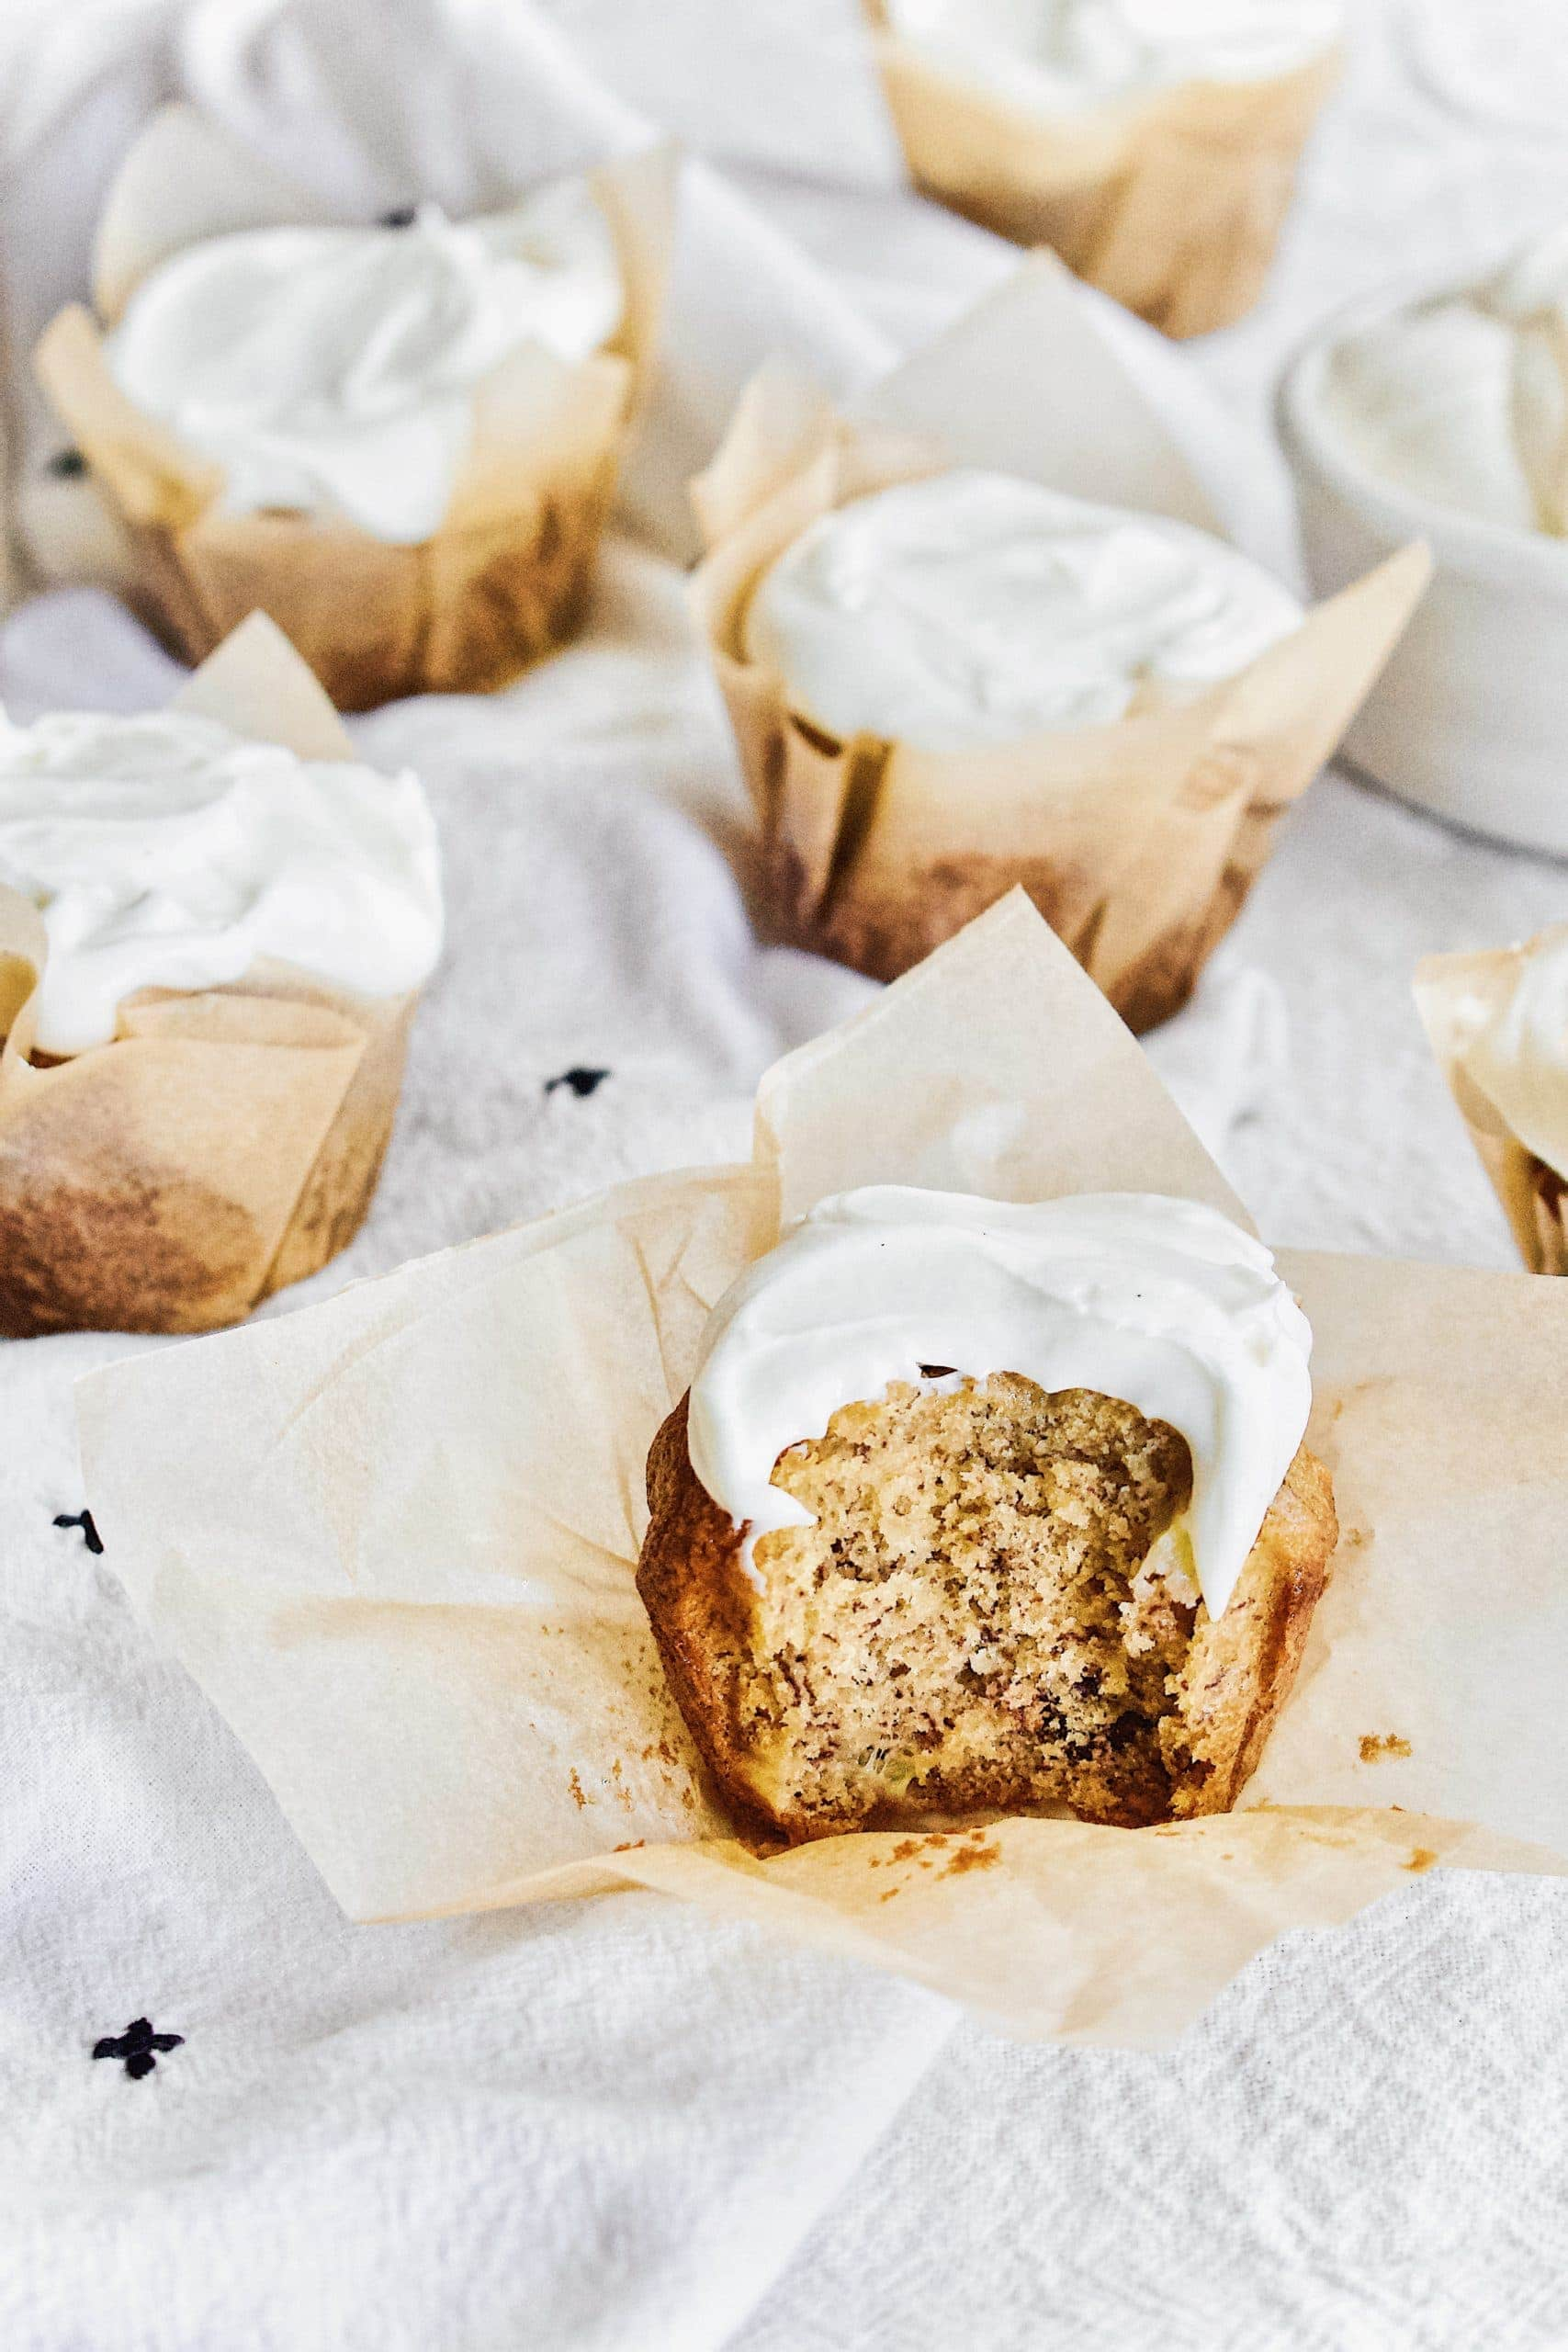 Banana Nut Muffins with Cream Cheese Frosting